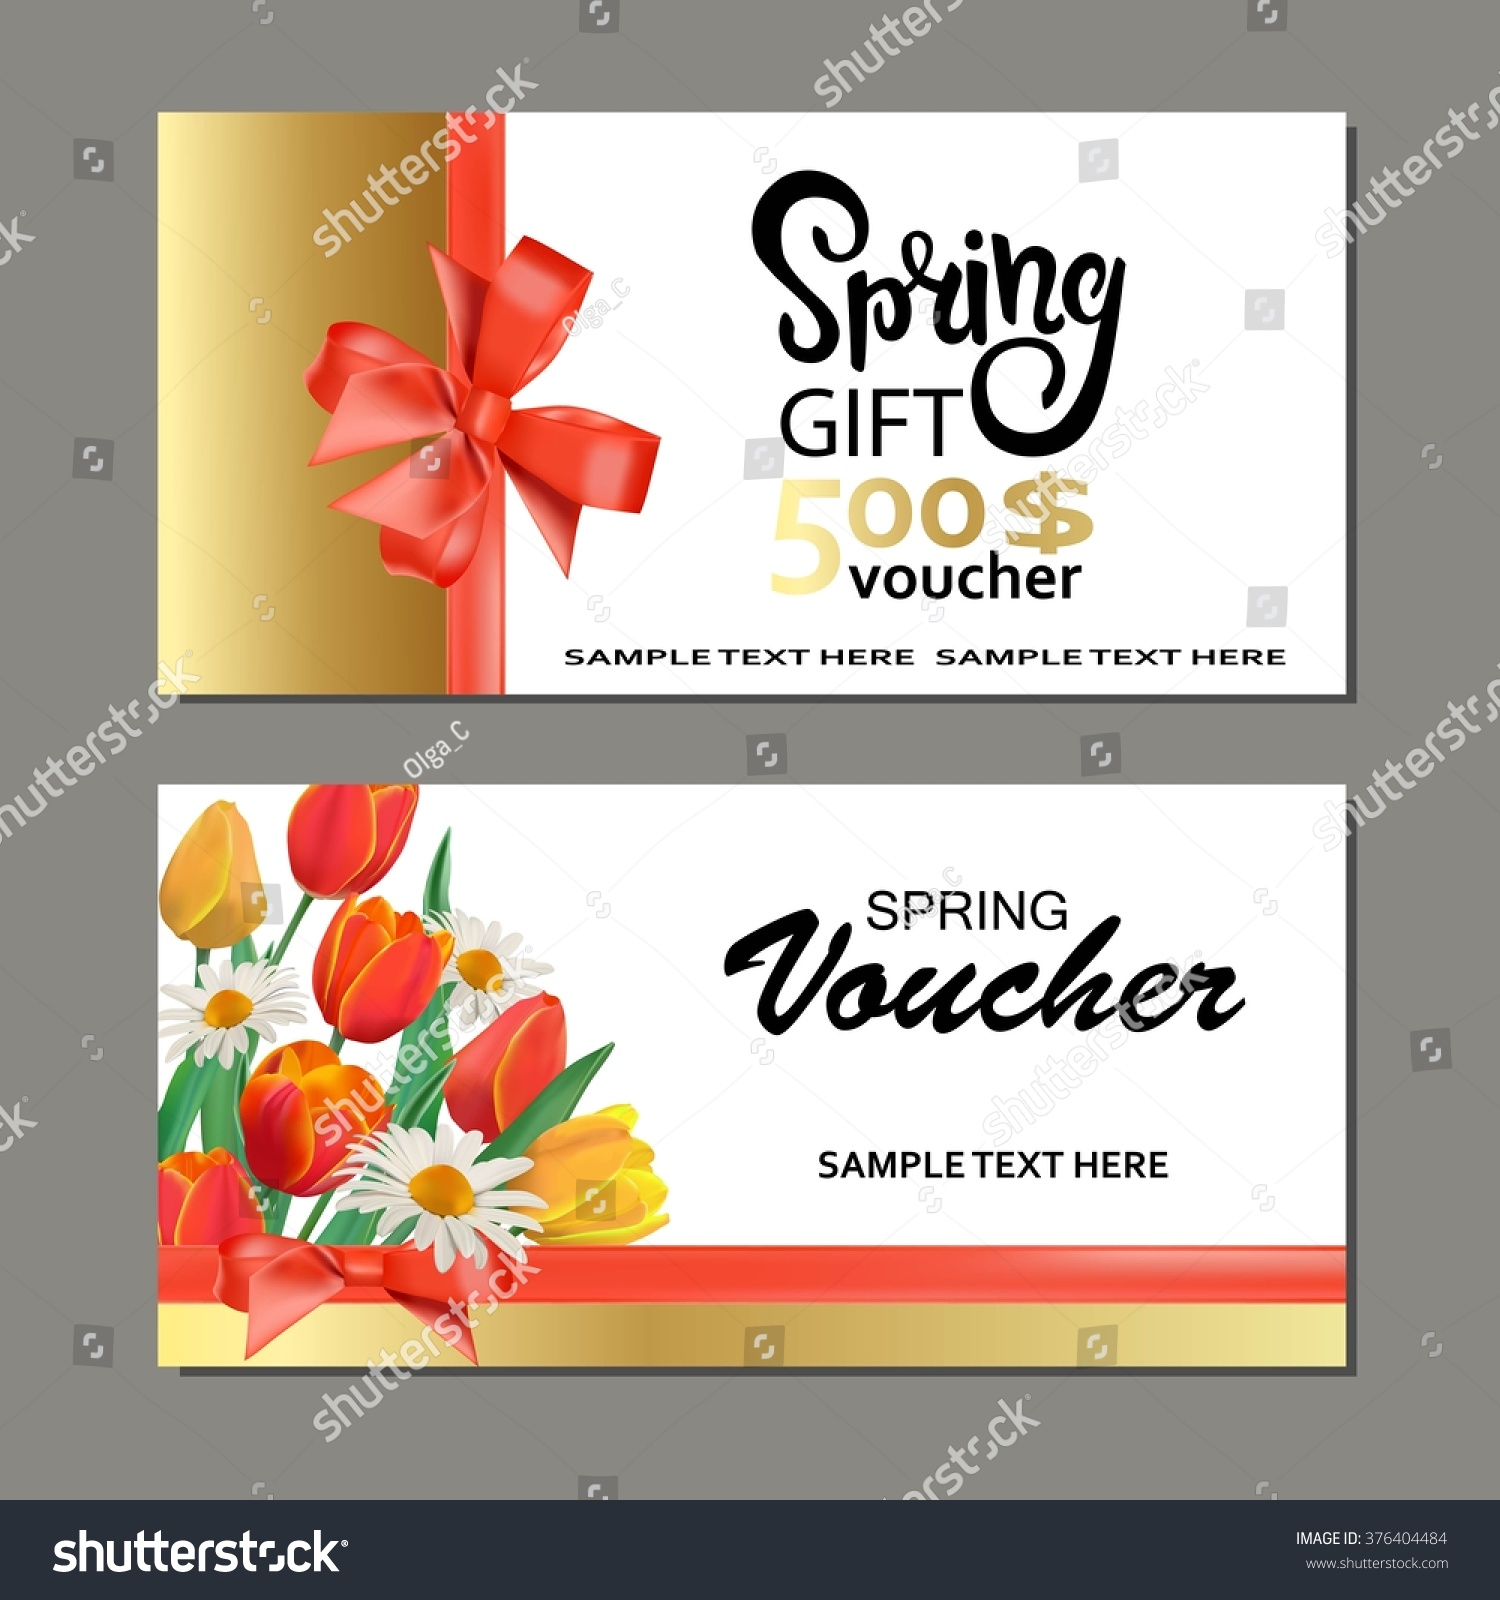 Spring Gift Cards Vouchers Templates Stock Vector HD (Royalty Free ...